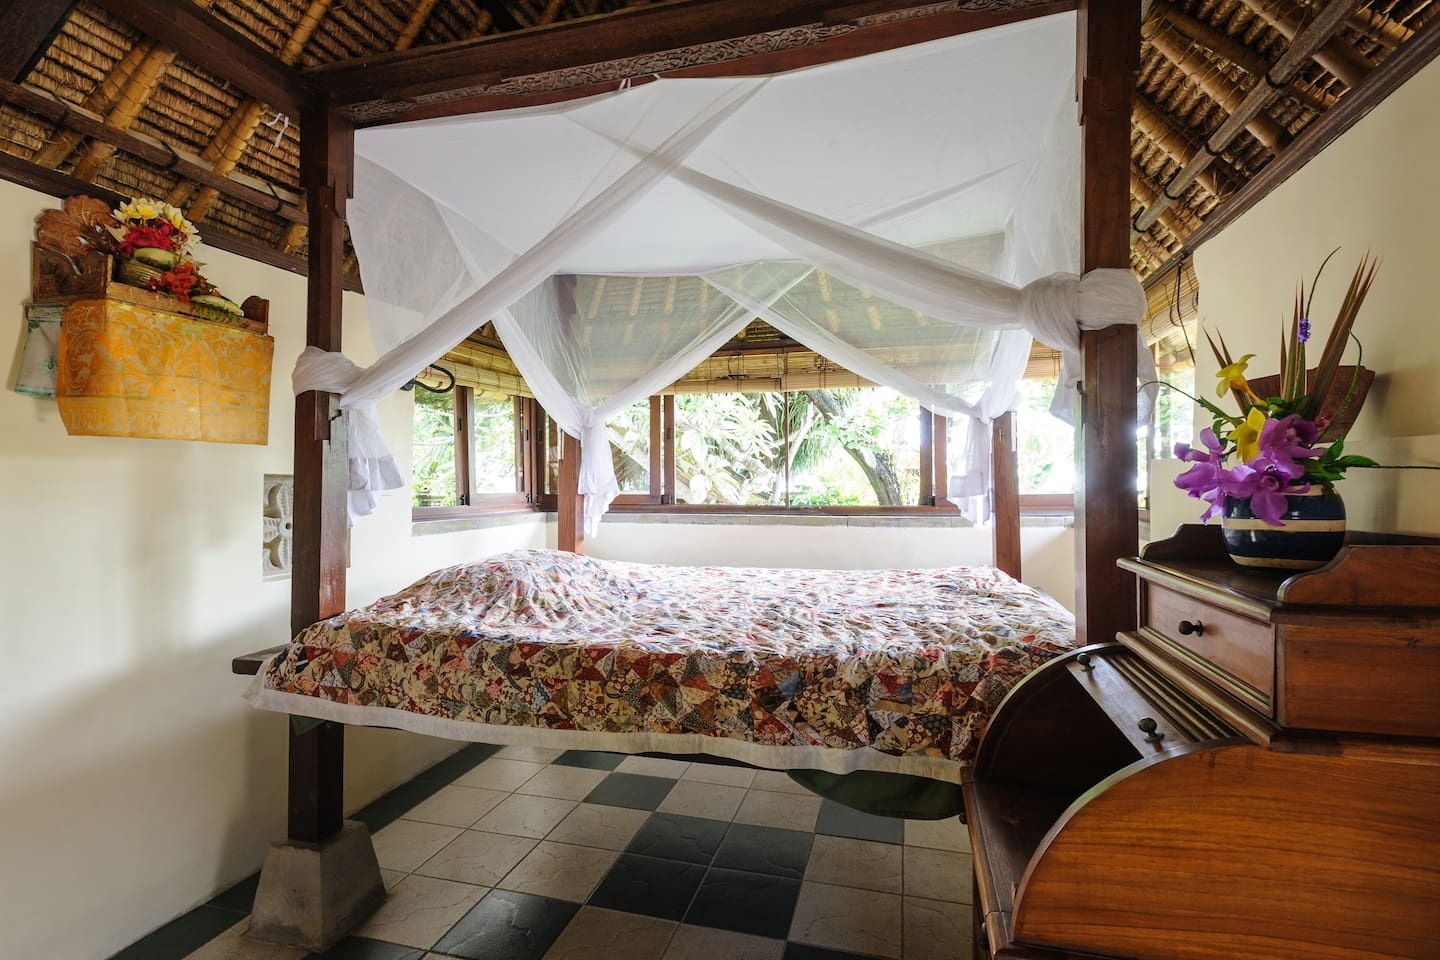 Traditional Balinese four-poster bed with views across the garden, over the wall to the sea